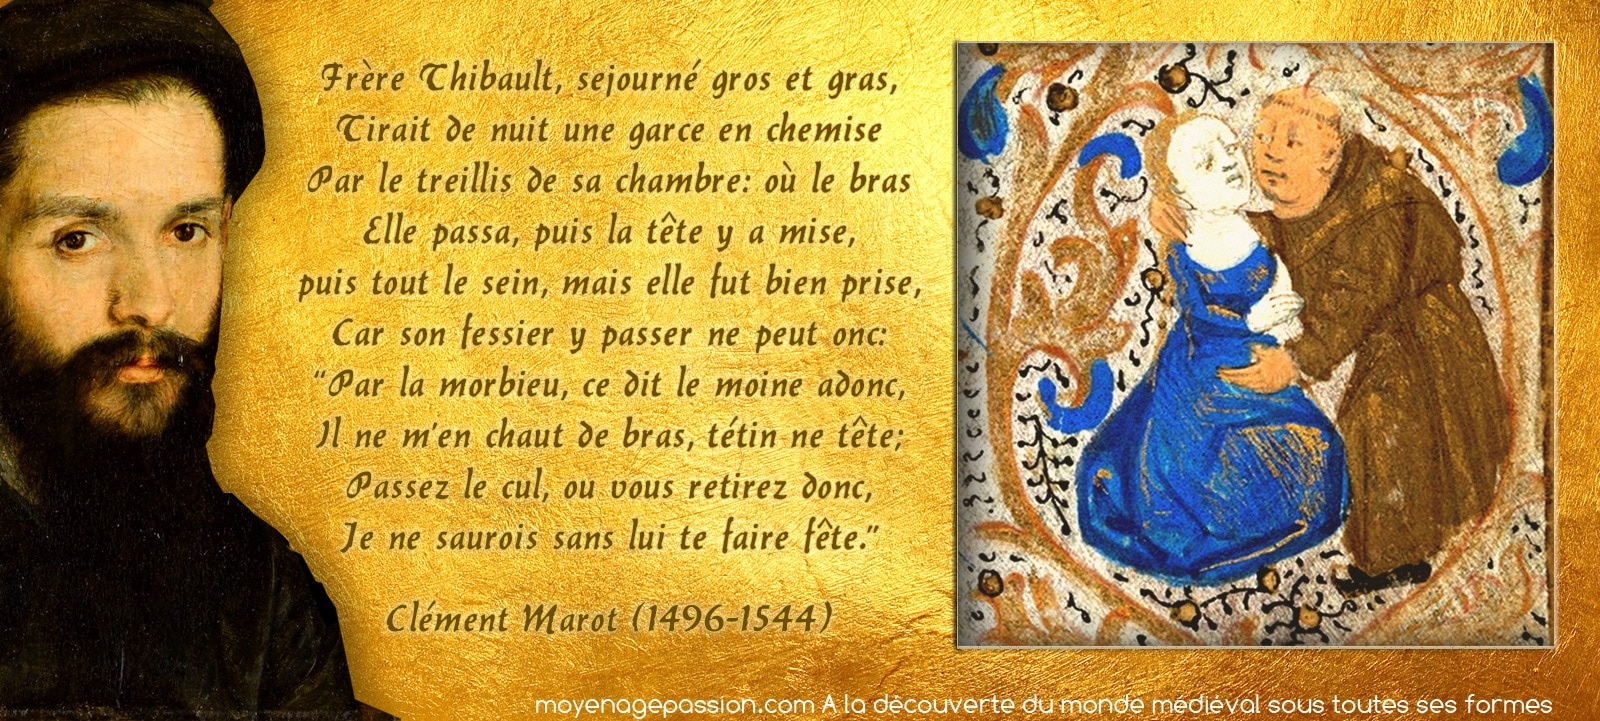 humour_poesie_medievale_epigramme_clement_marot_grivoiserie_moine_volage